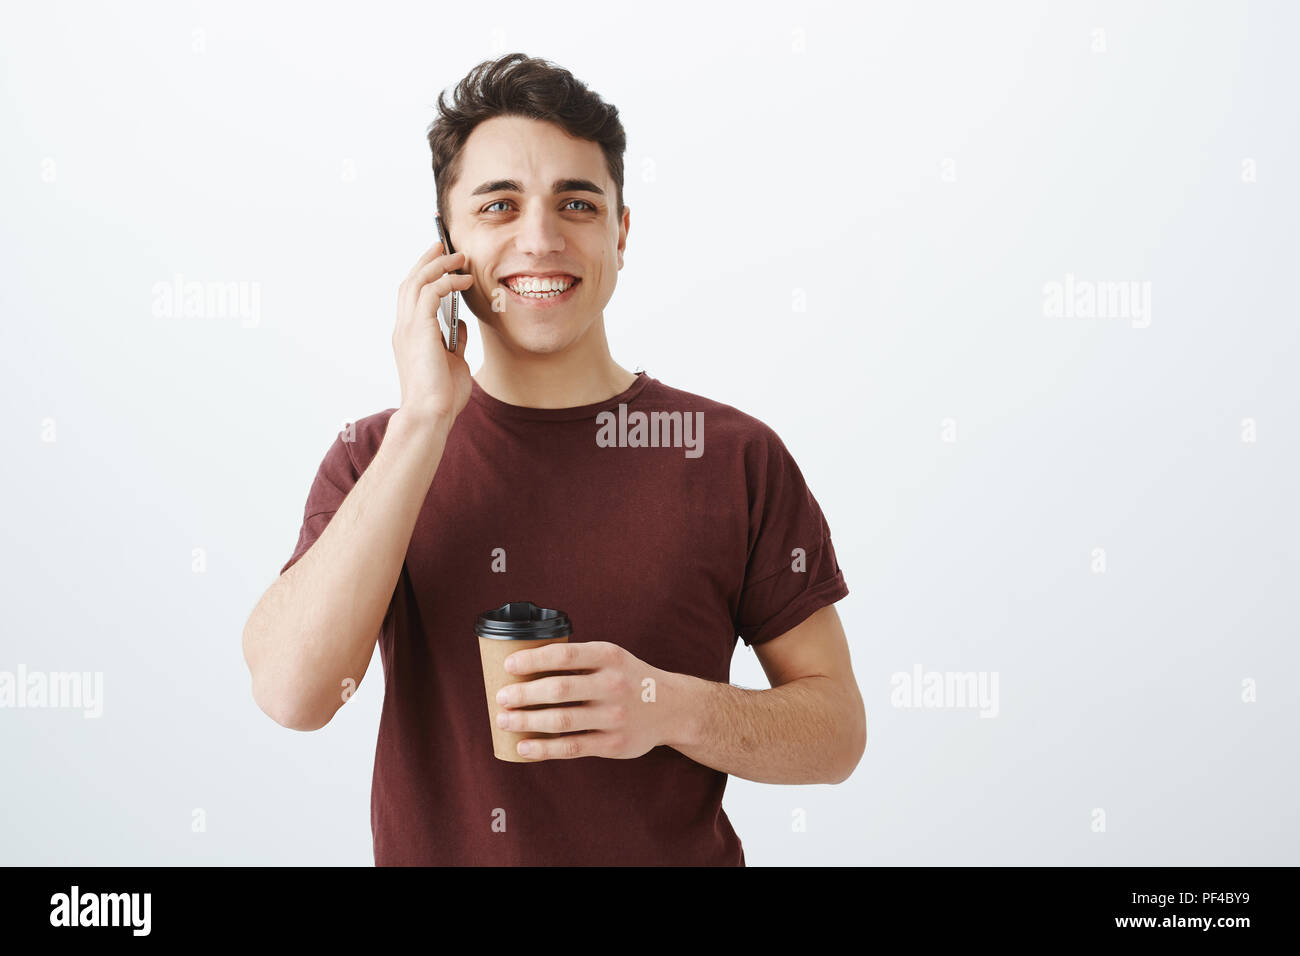 Online dating talking on the phone